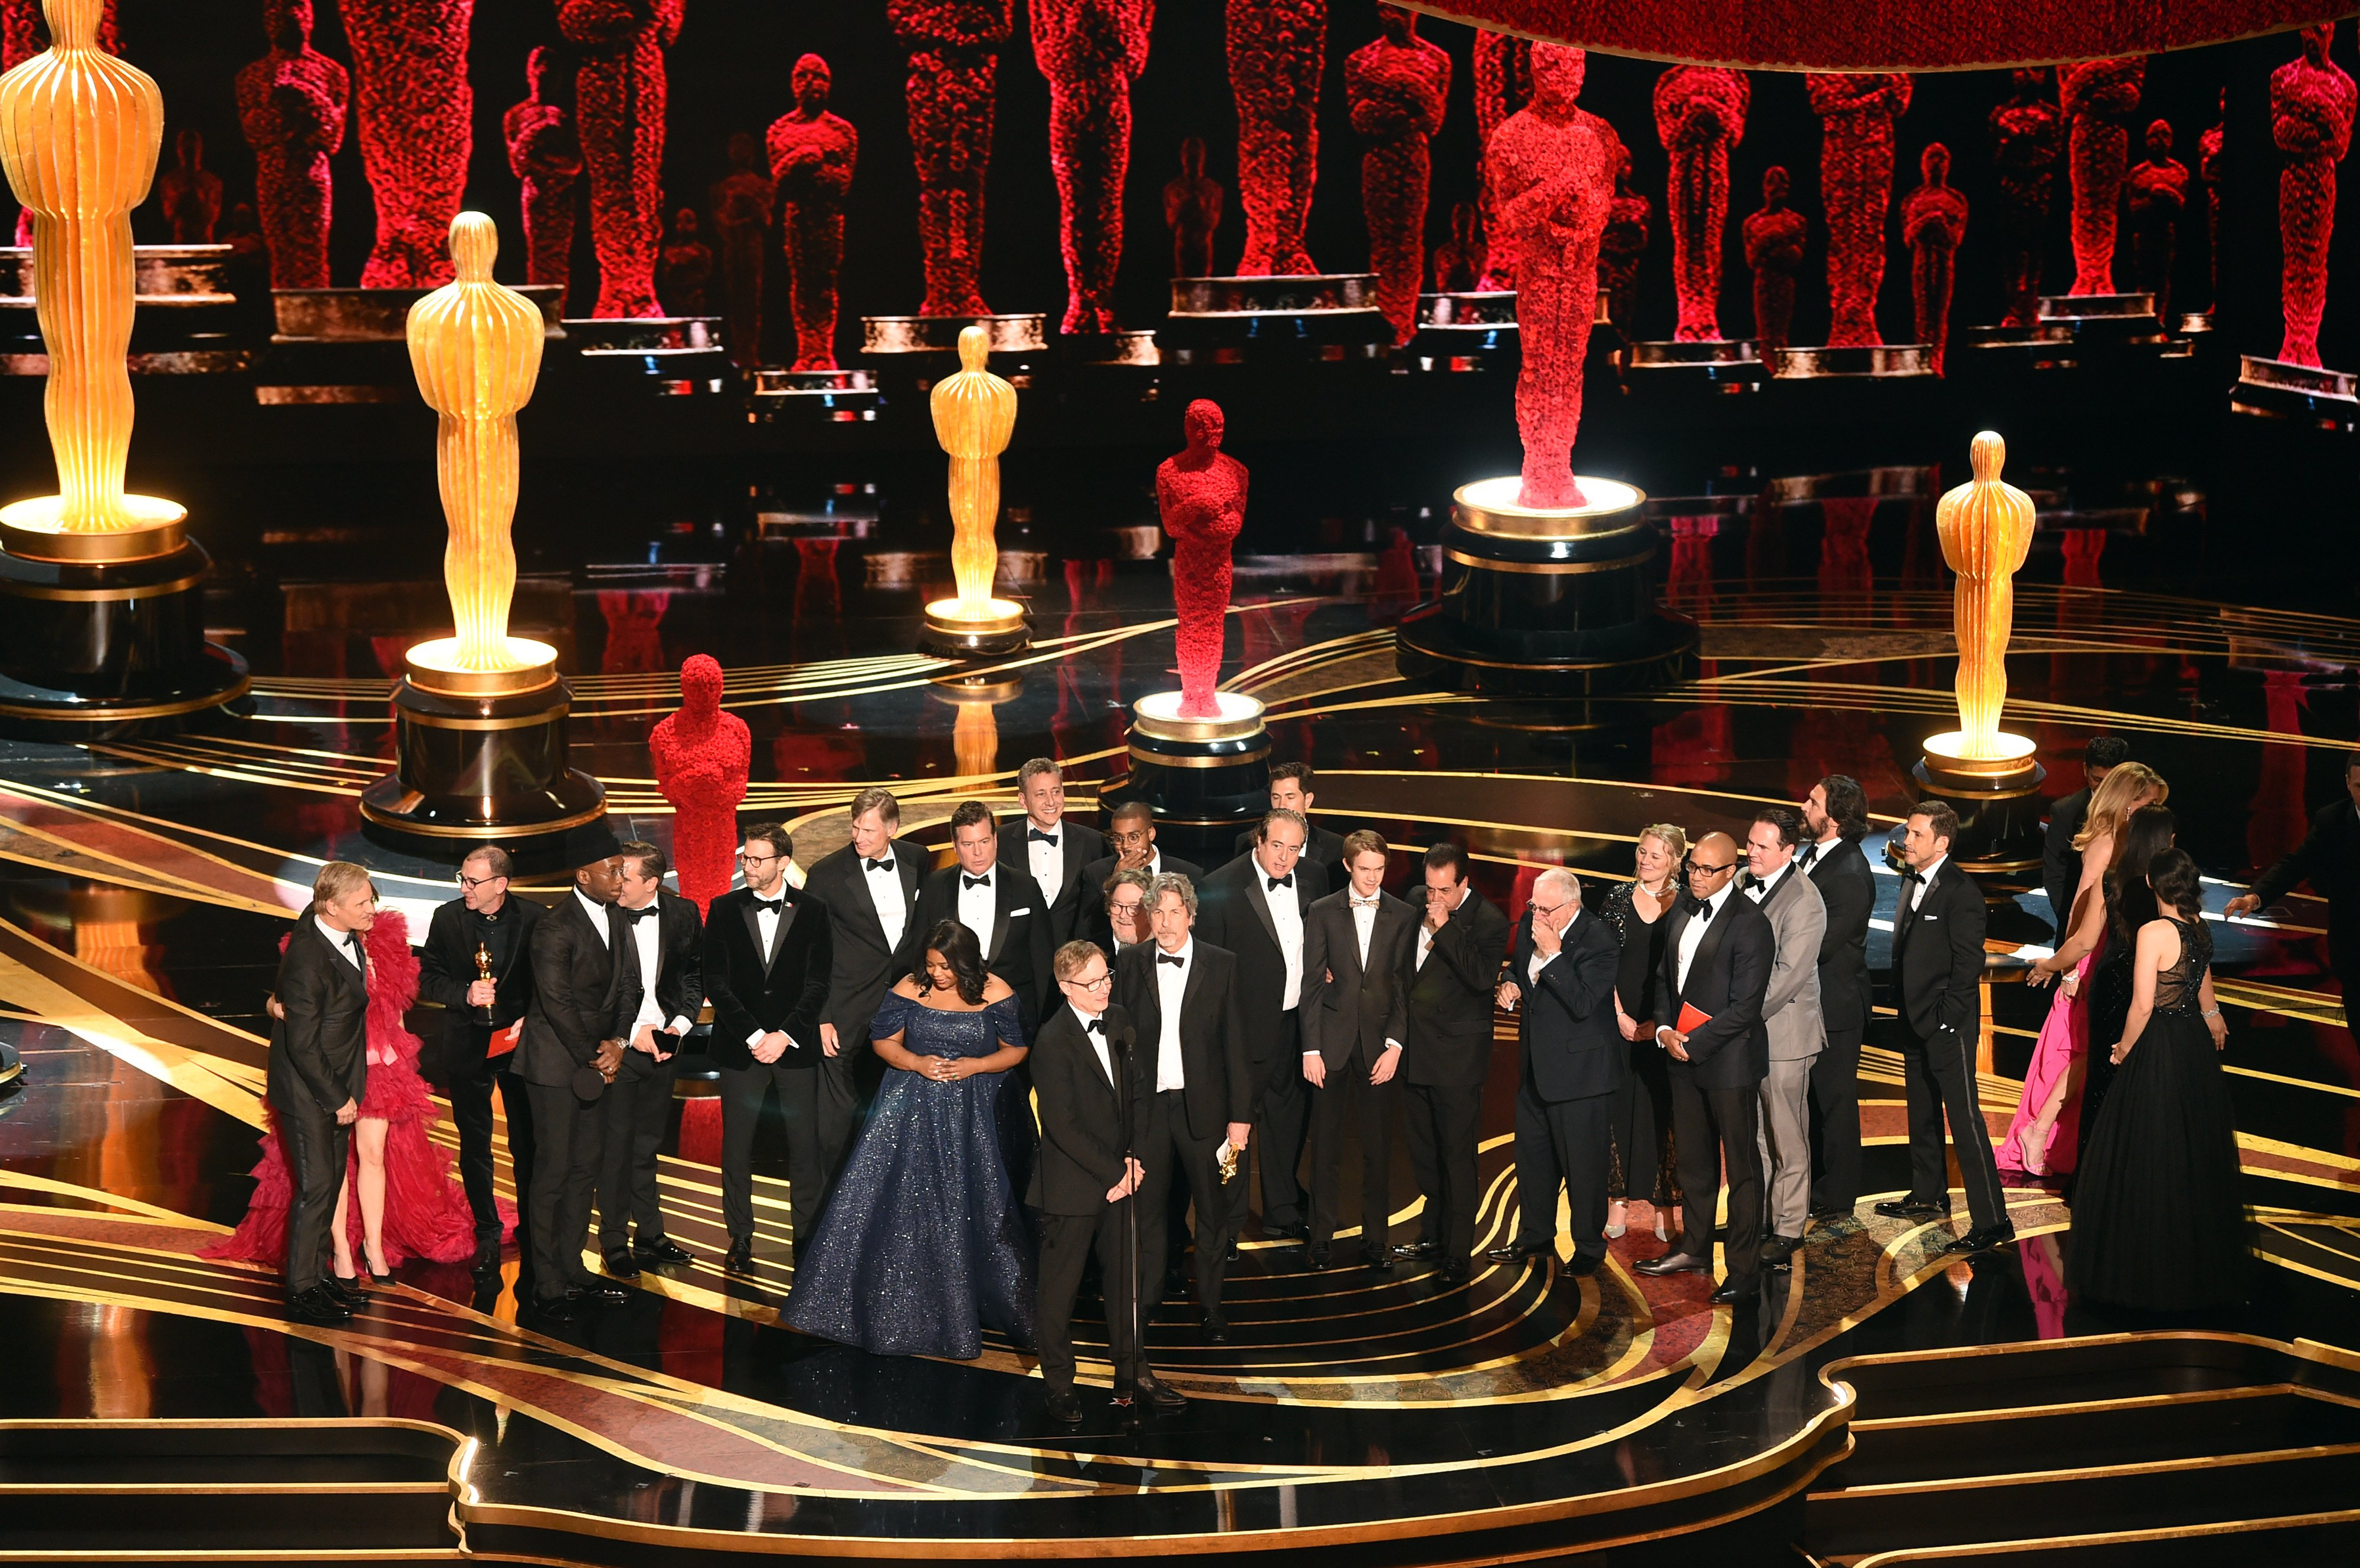 Oscars 2019: GREEN BOOK wins Best Picture - Oscars 2019 ...